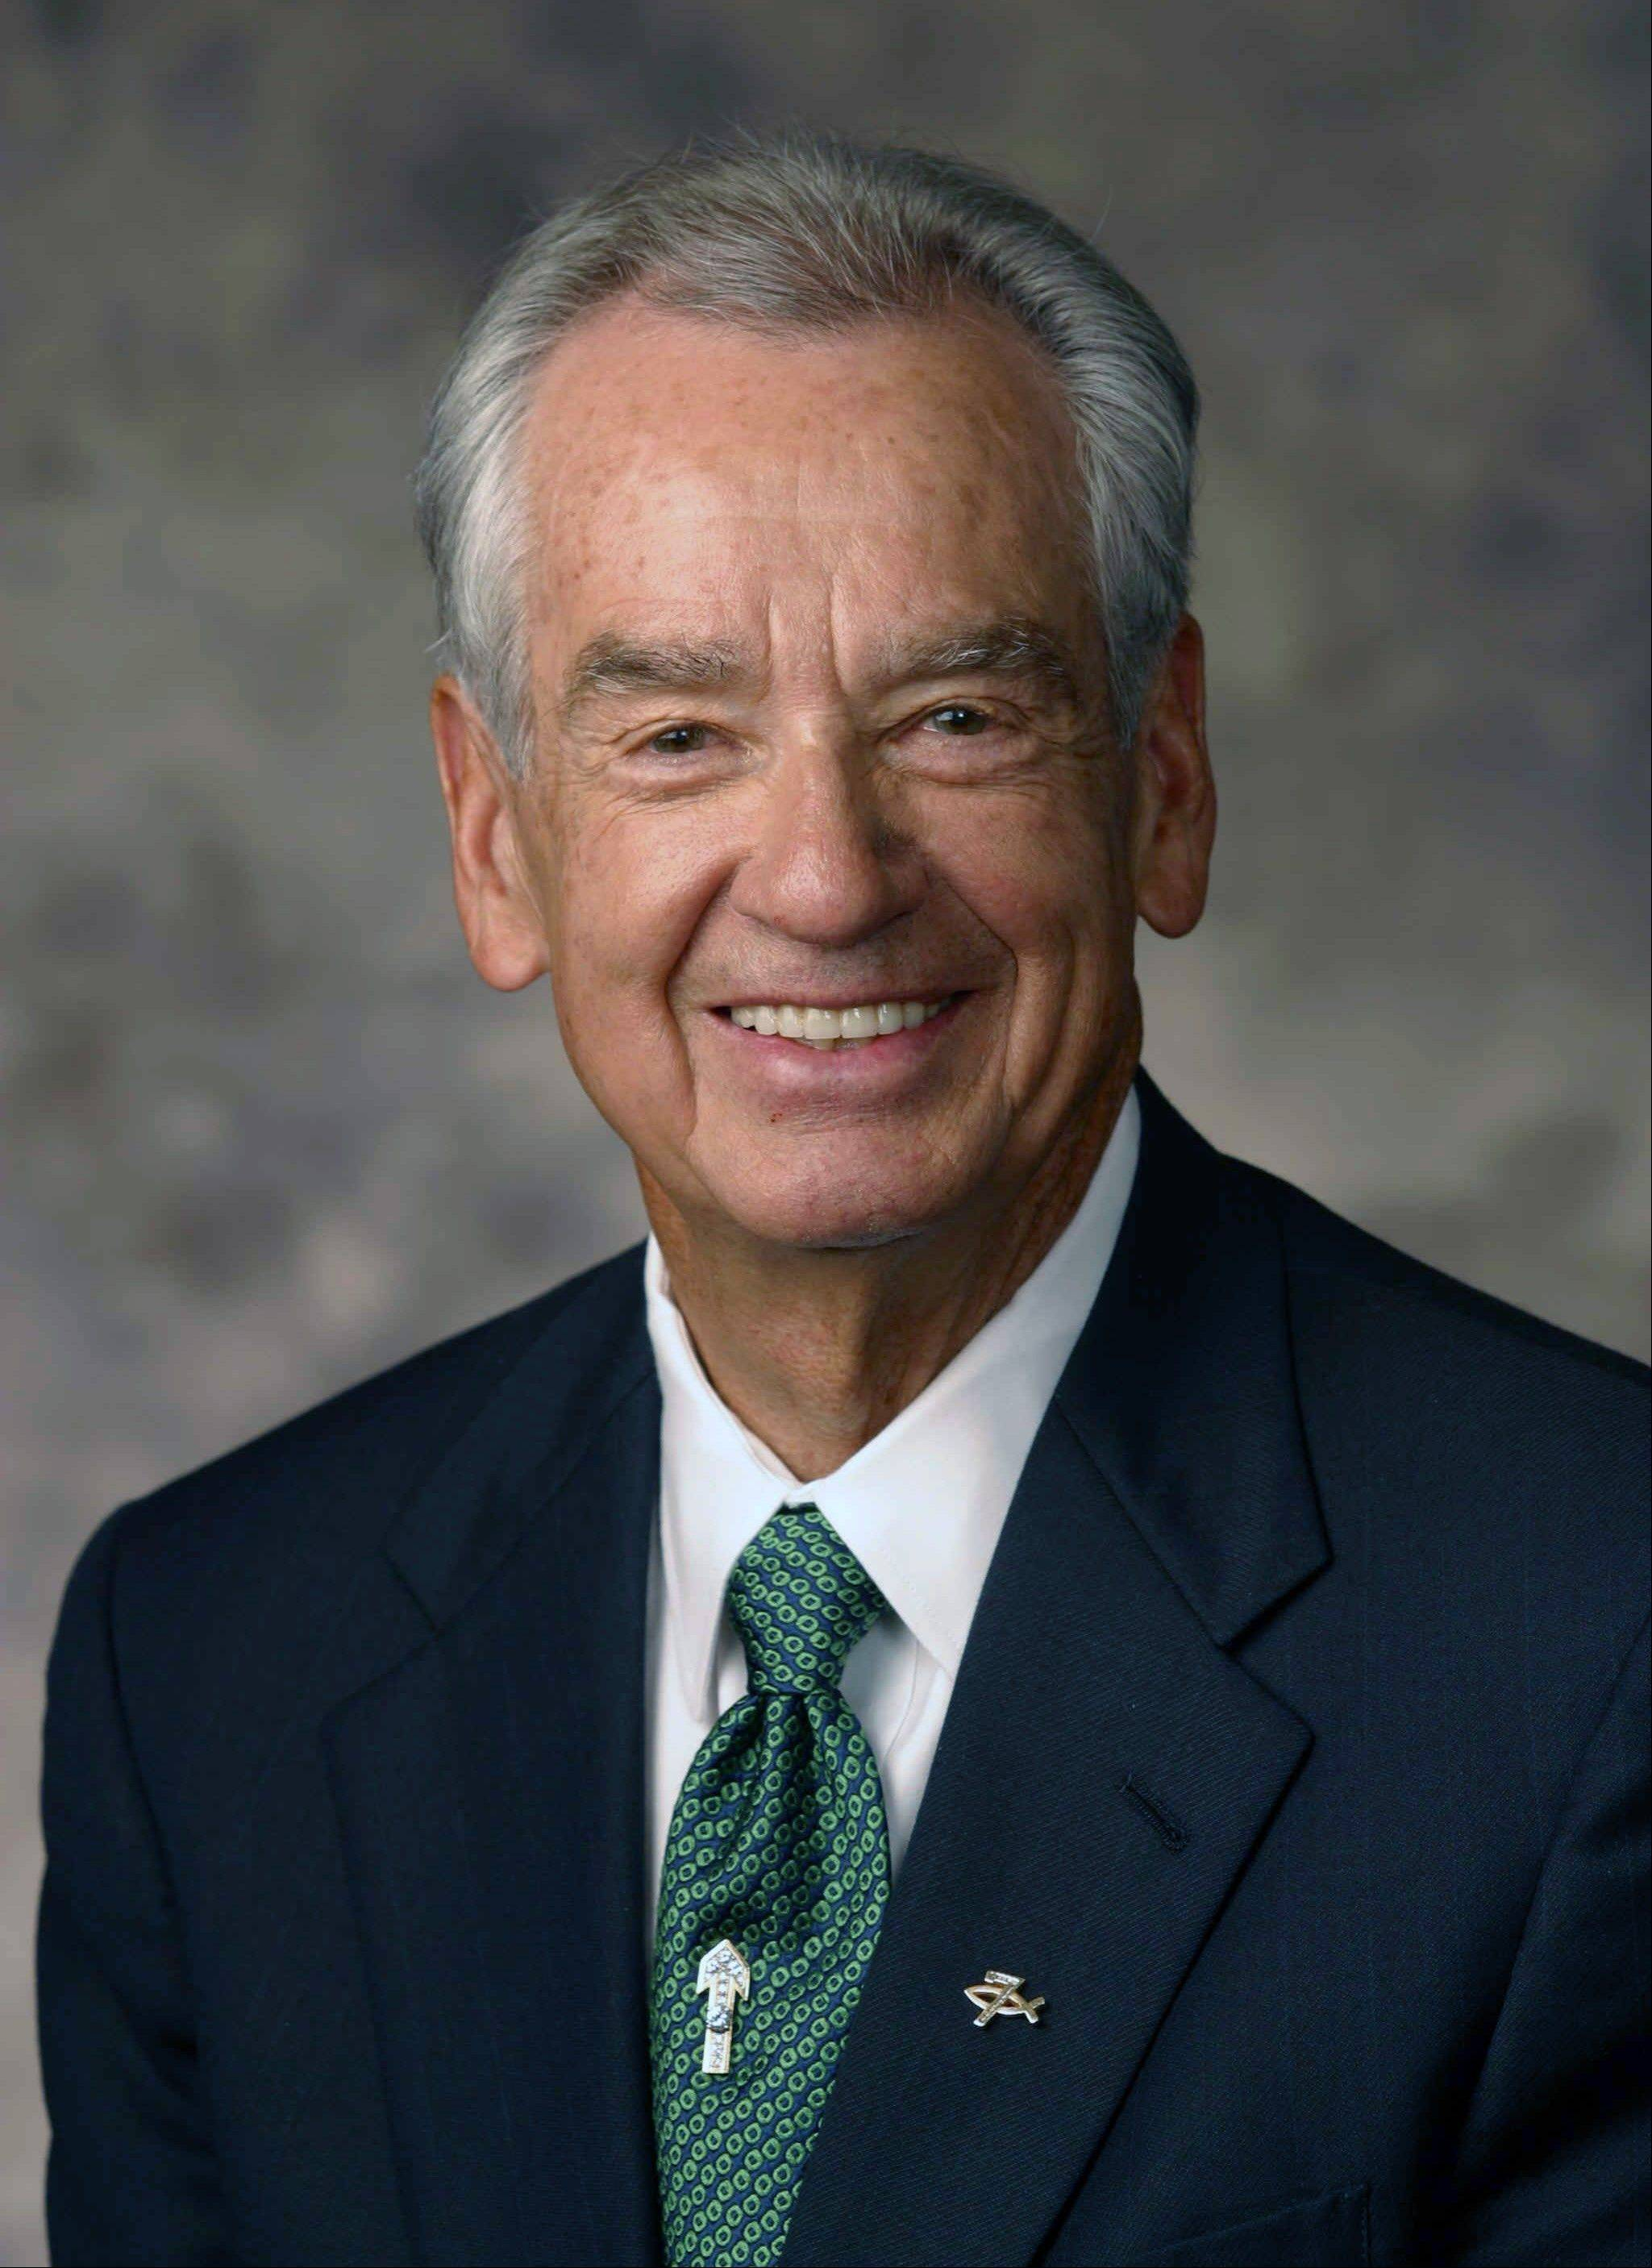 Zig Ziglar, an author of more than 30 books known for a focus on living a balanced life, died Wedesday in the Dallas suburb of Plano. He was 86.